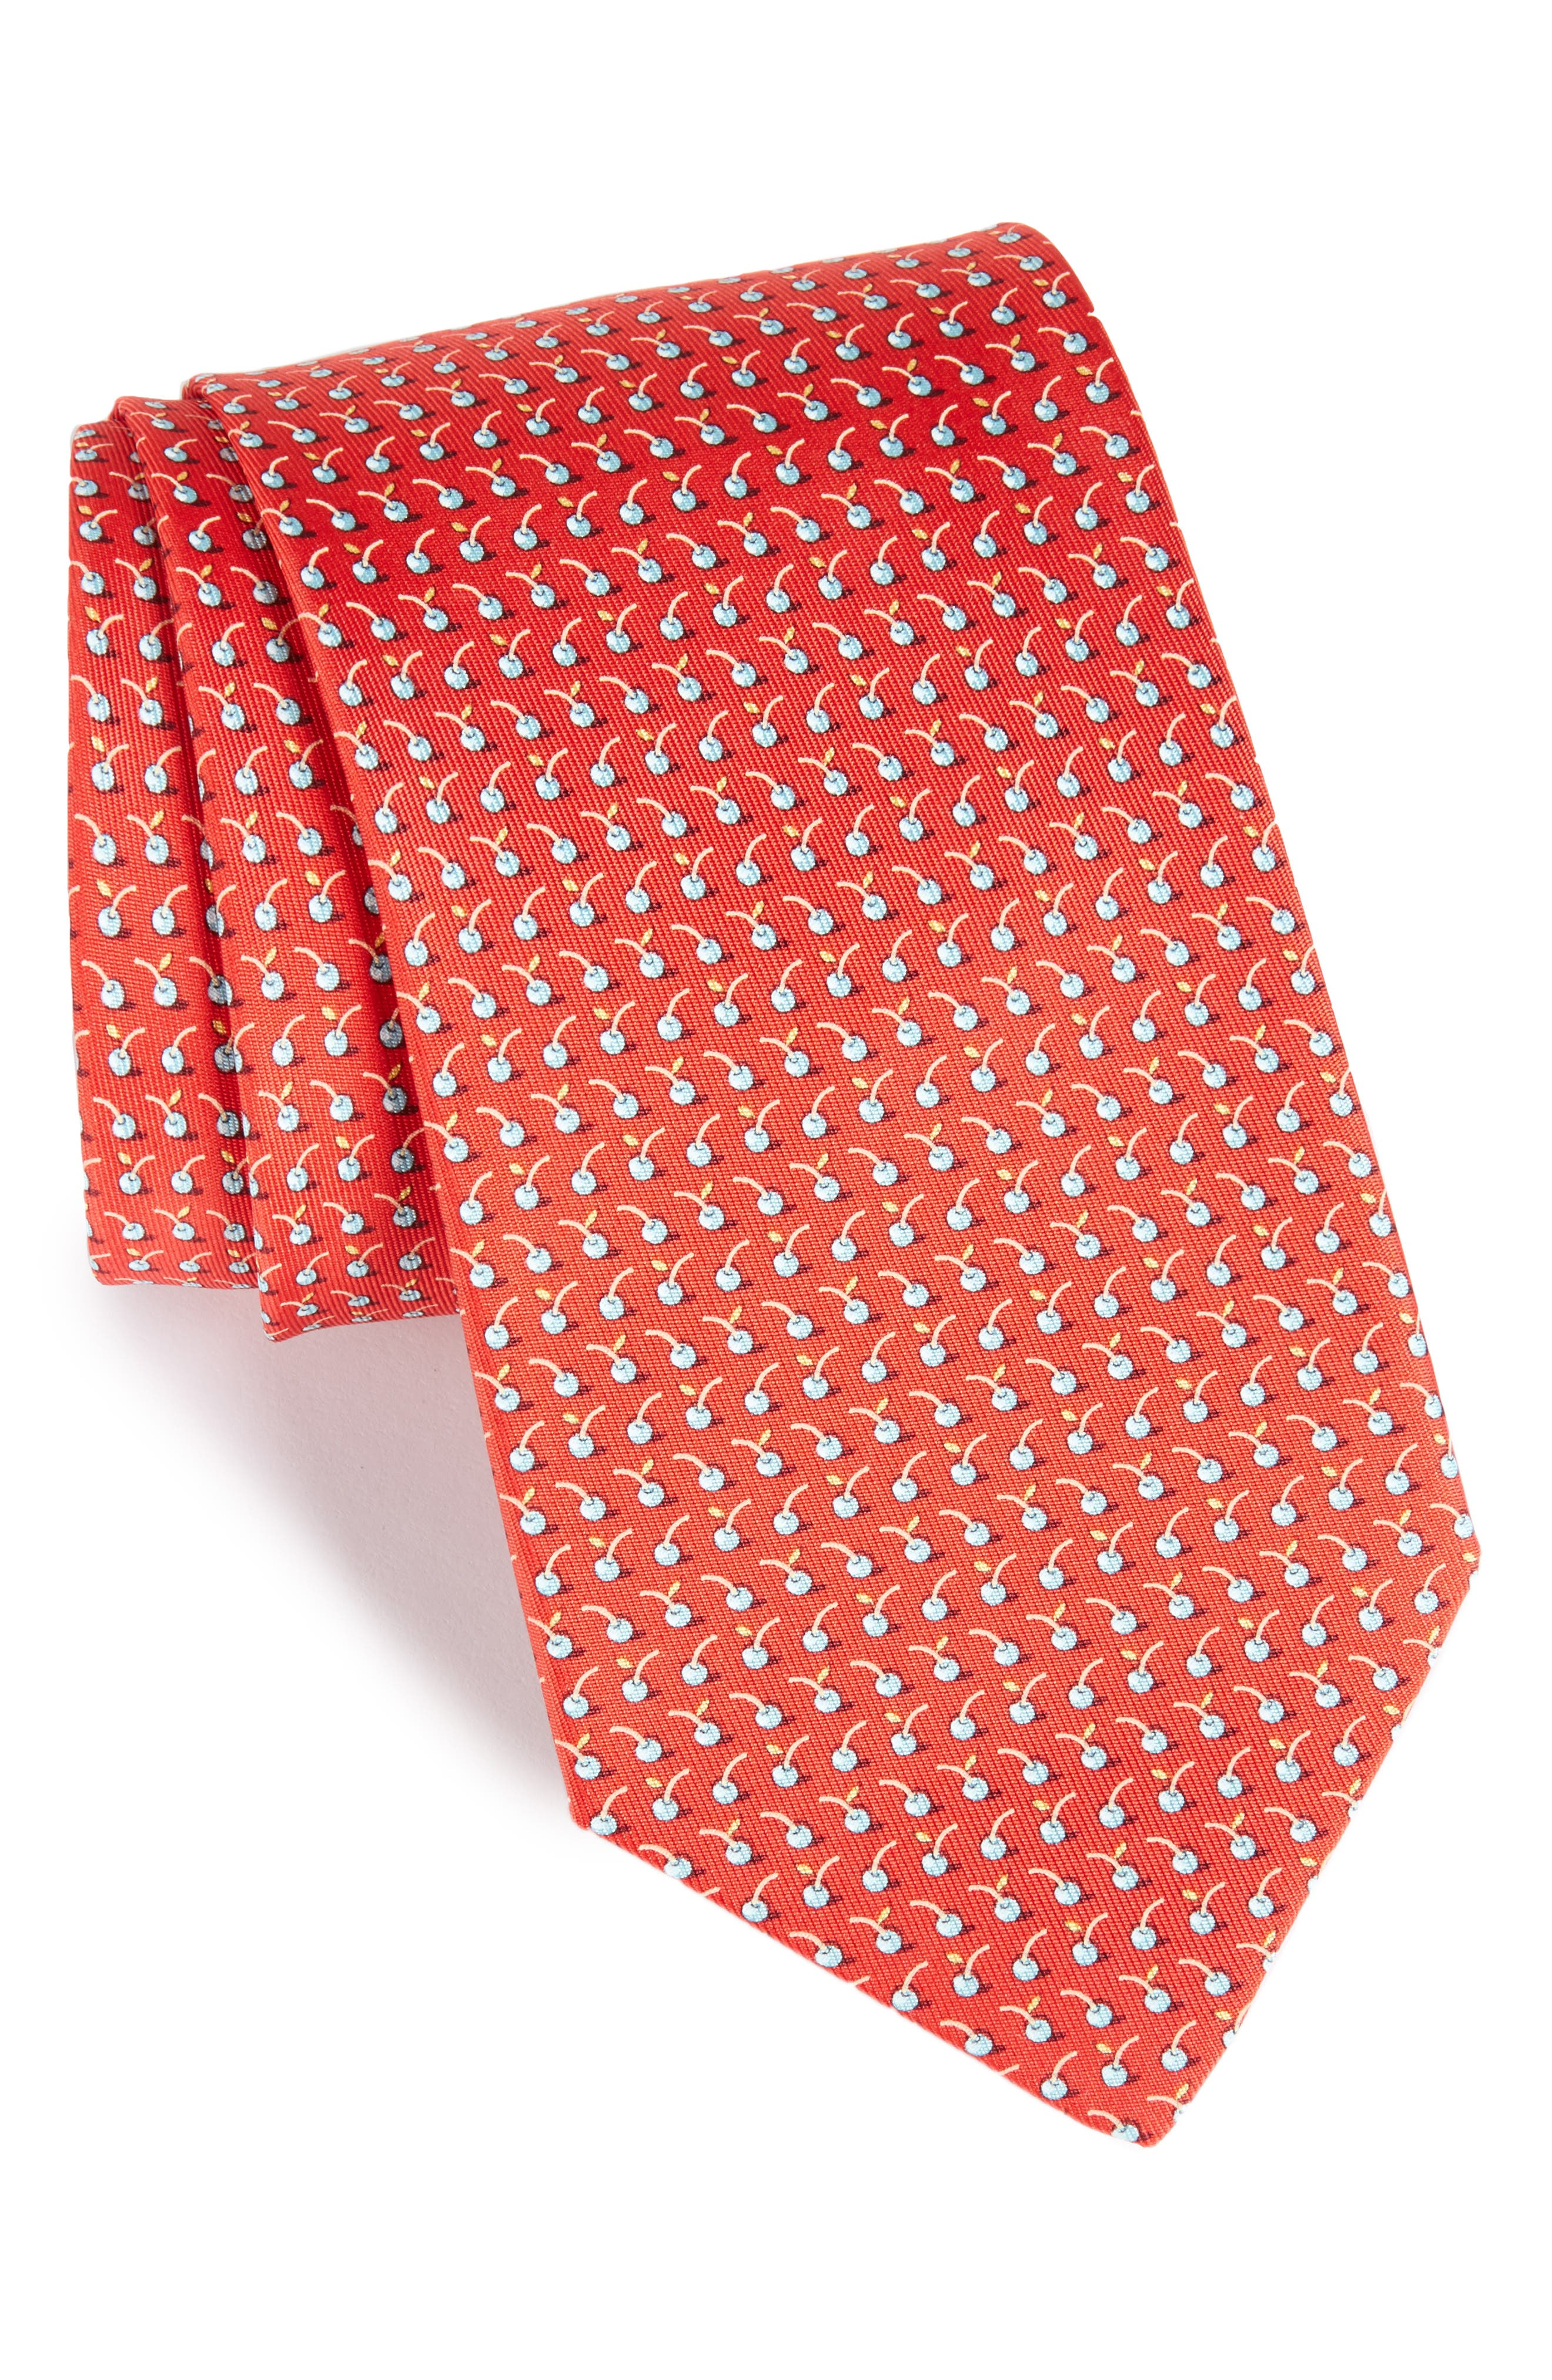 Main Image - Salvatore Ferragamo Fruit Silk Tie